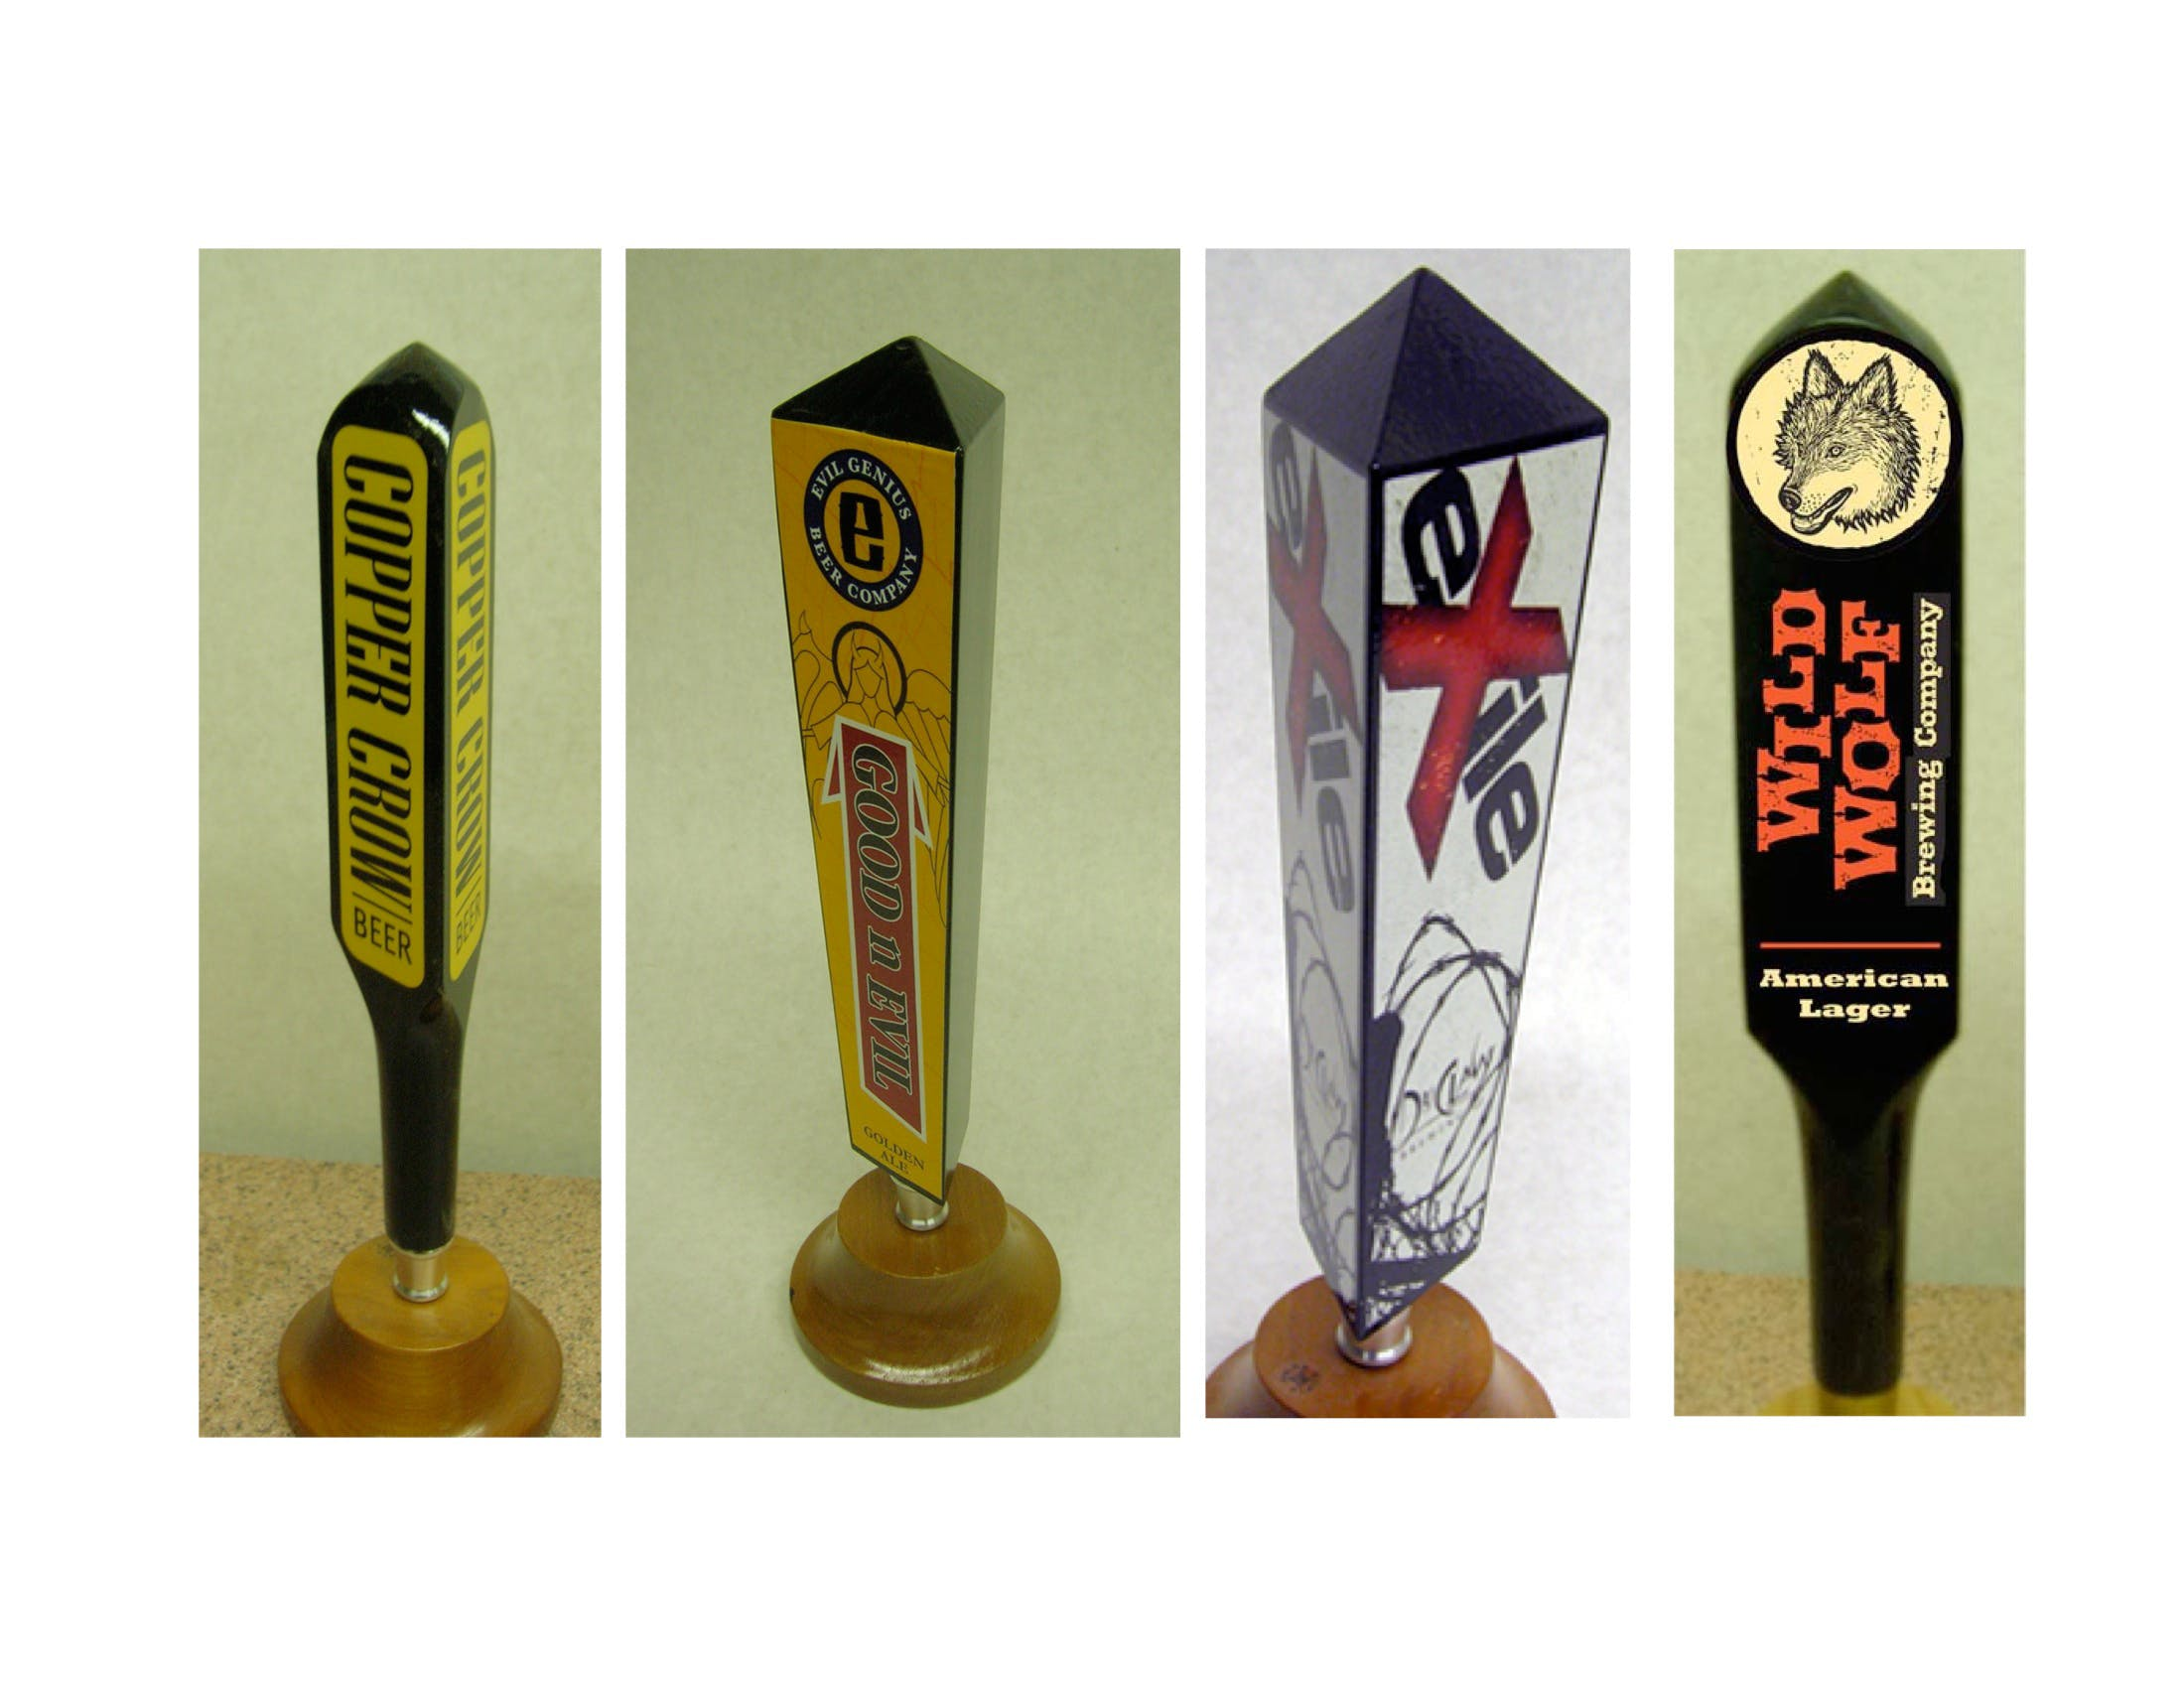 Three Sided Tap Handles  Tap handle sold by Mark Supik & Co.